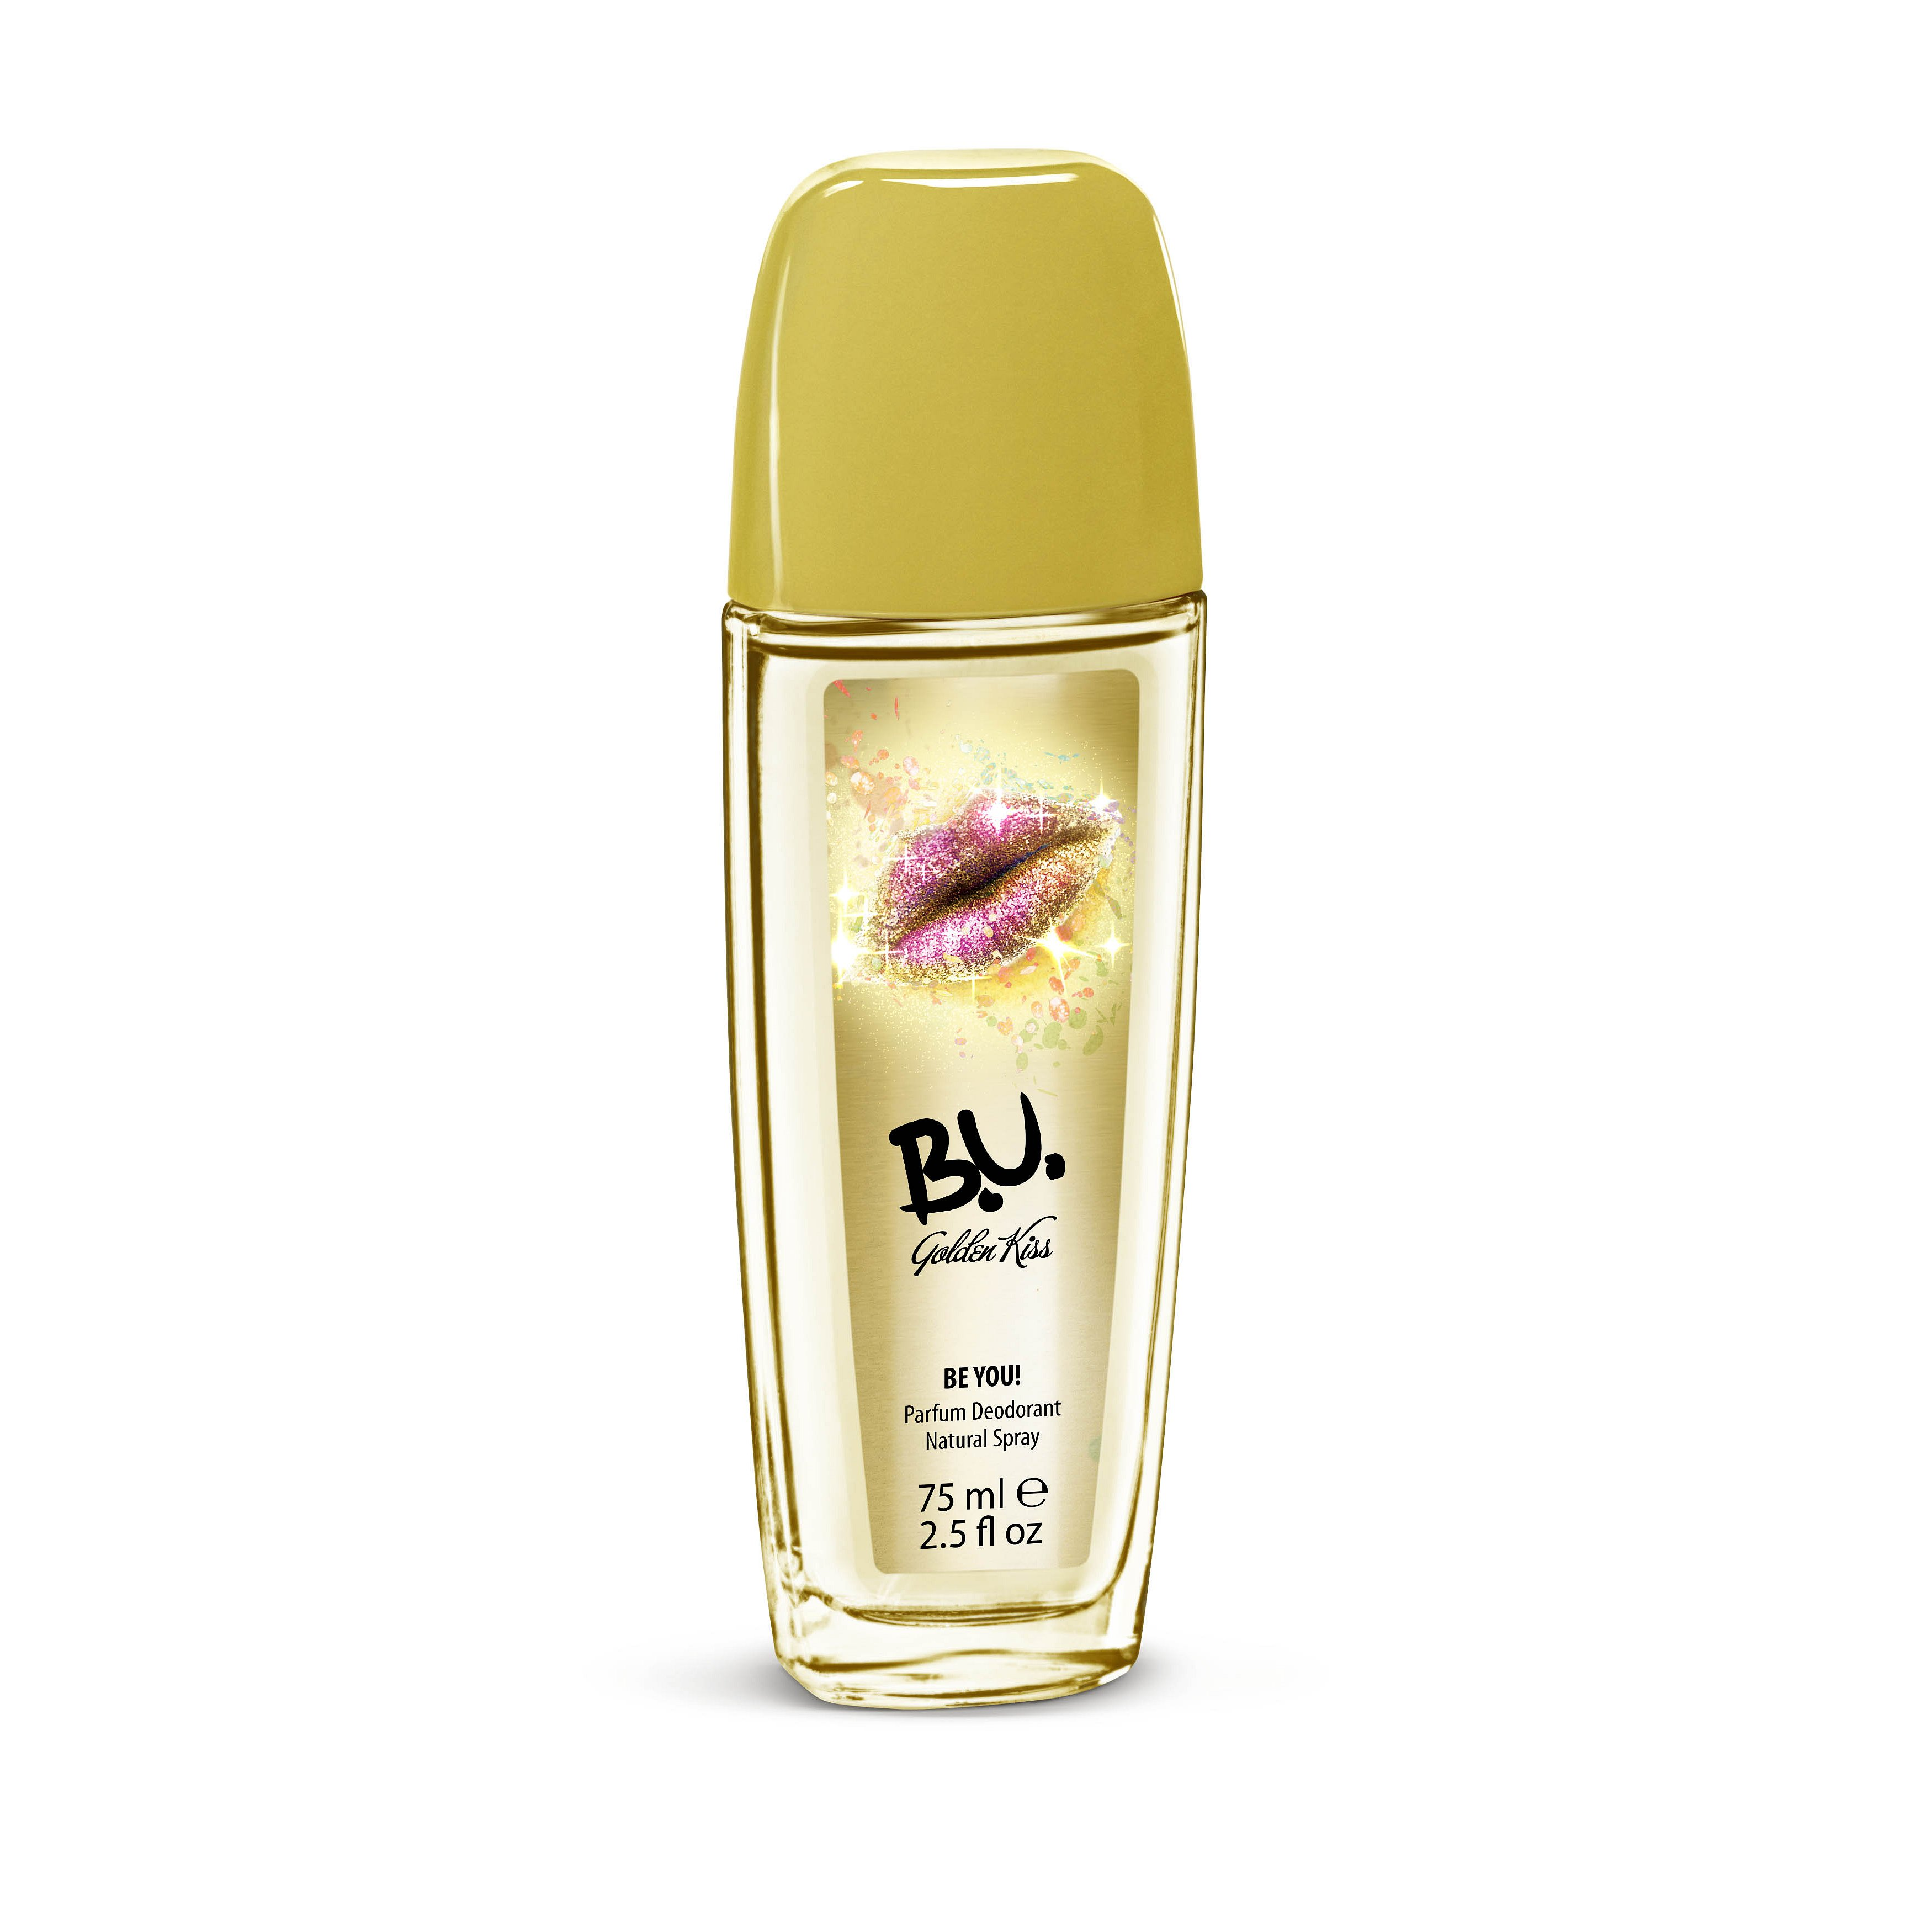 B.U. Golden Kiss natural deodorant ve spreji 75 ml